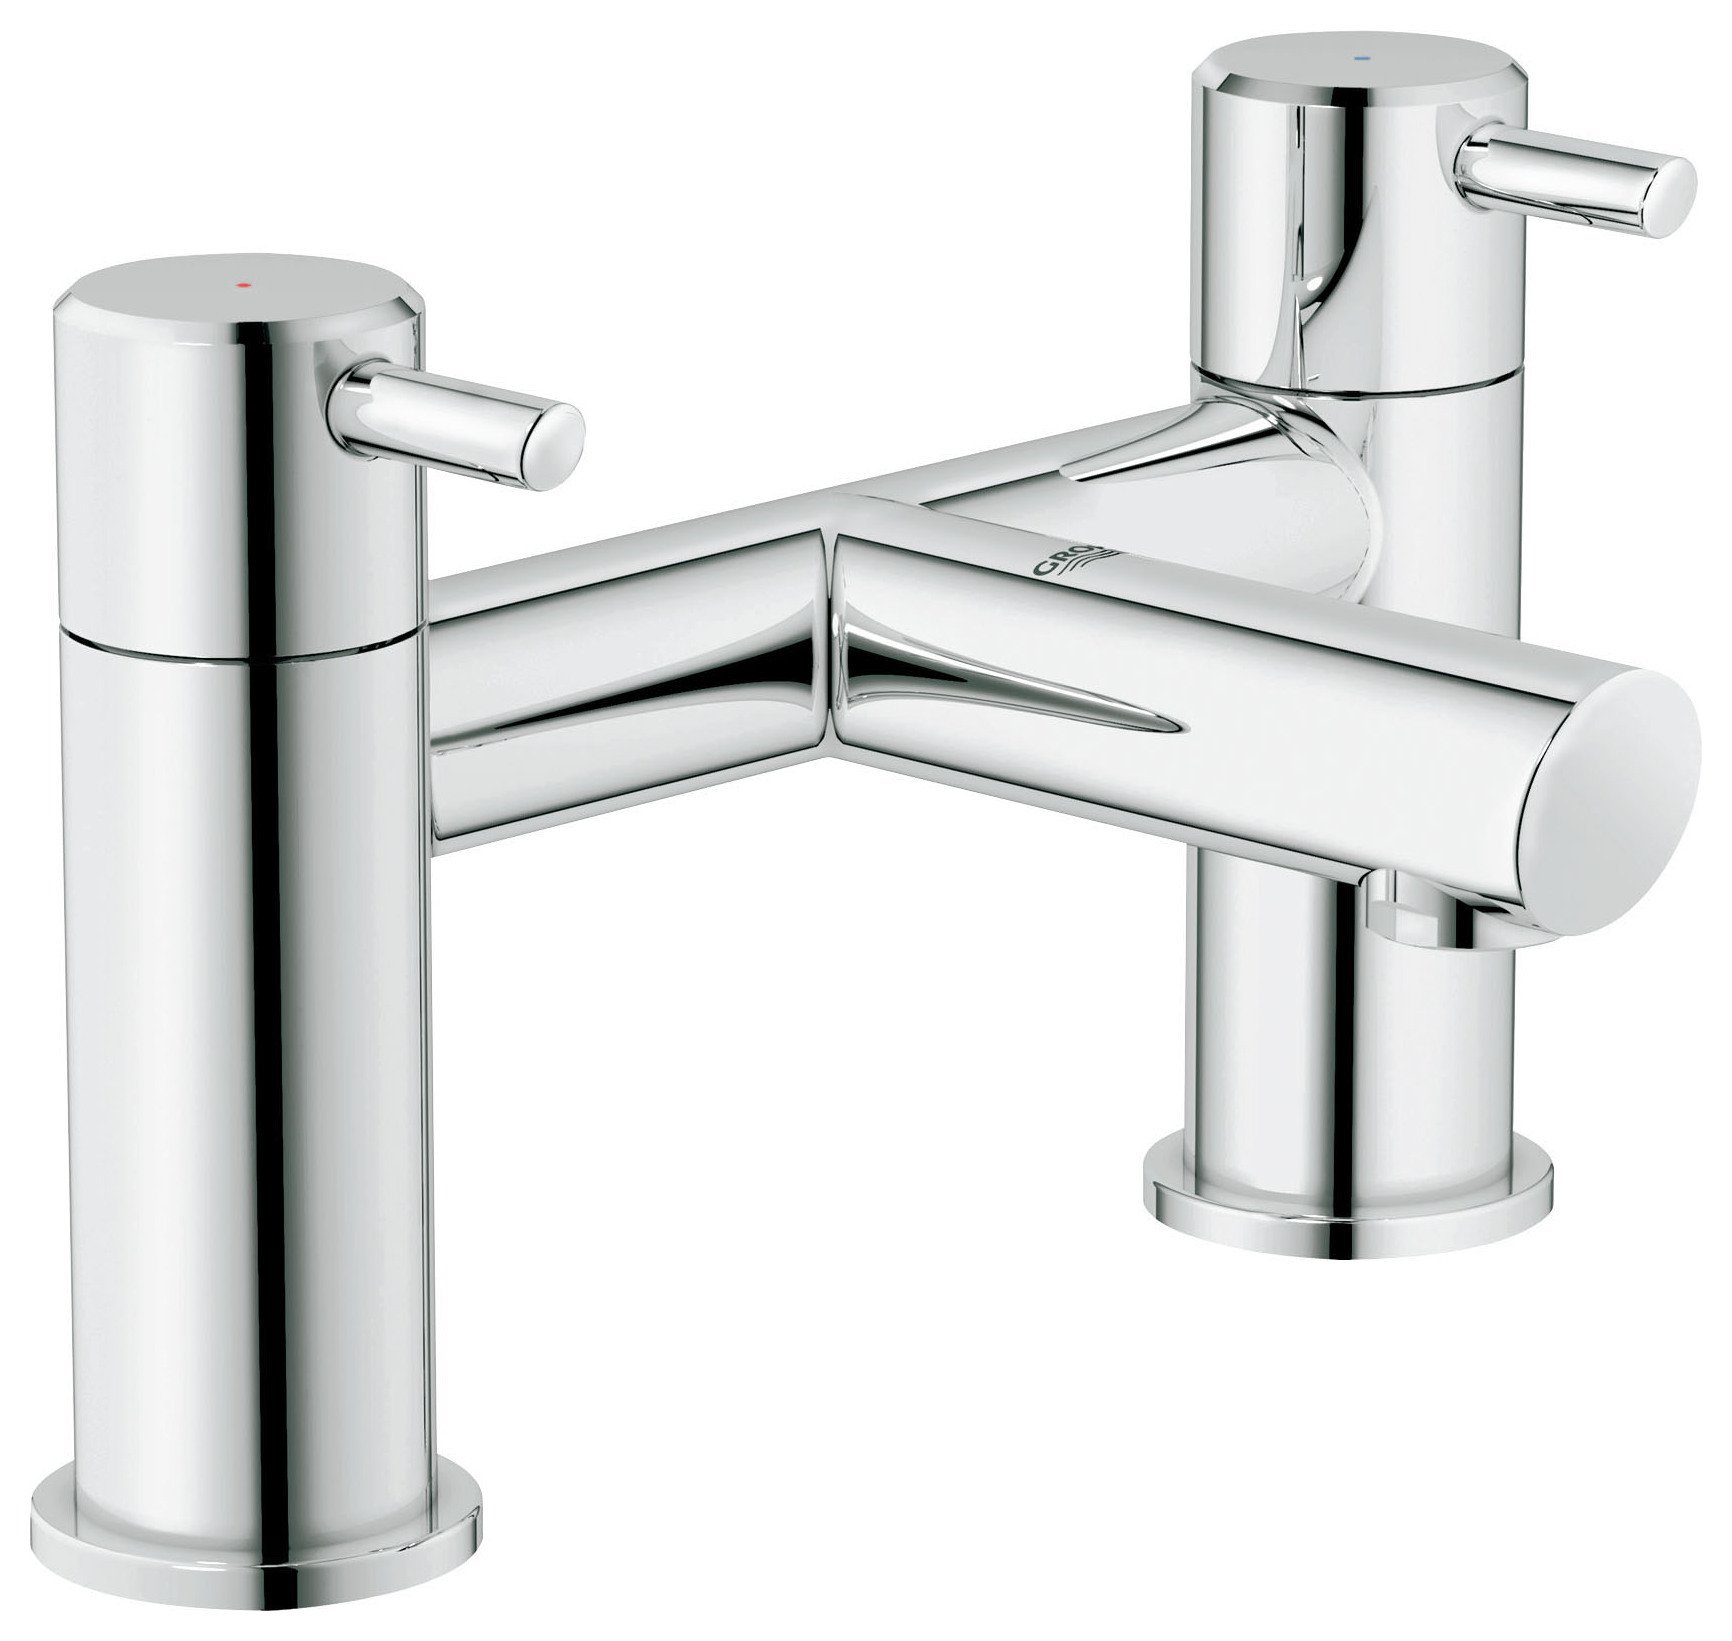 Grohe Feel Deckmounted Bath Filler Tap.